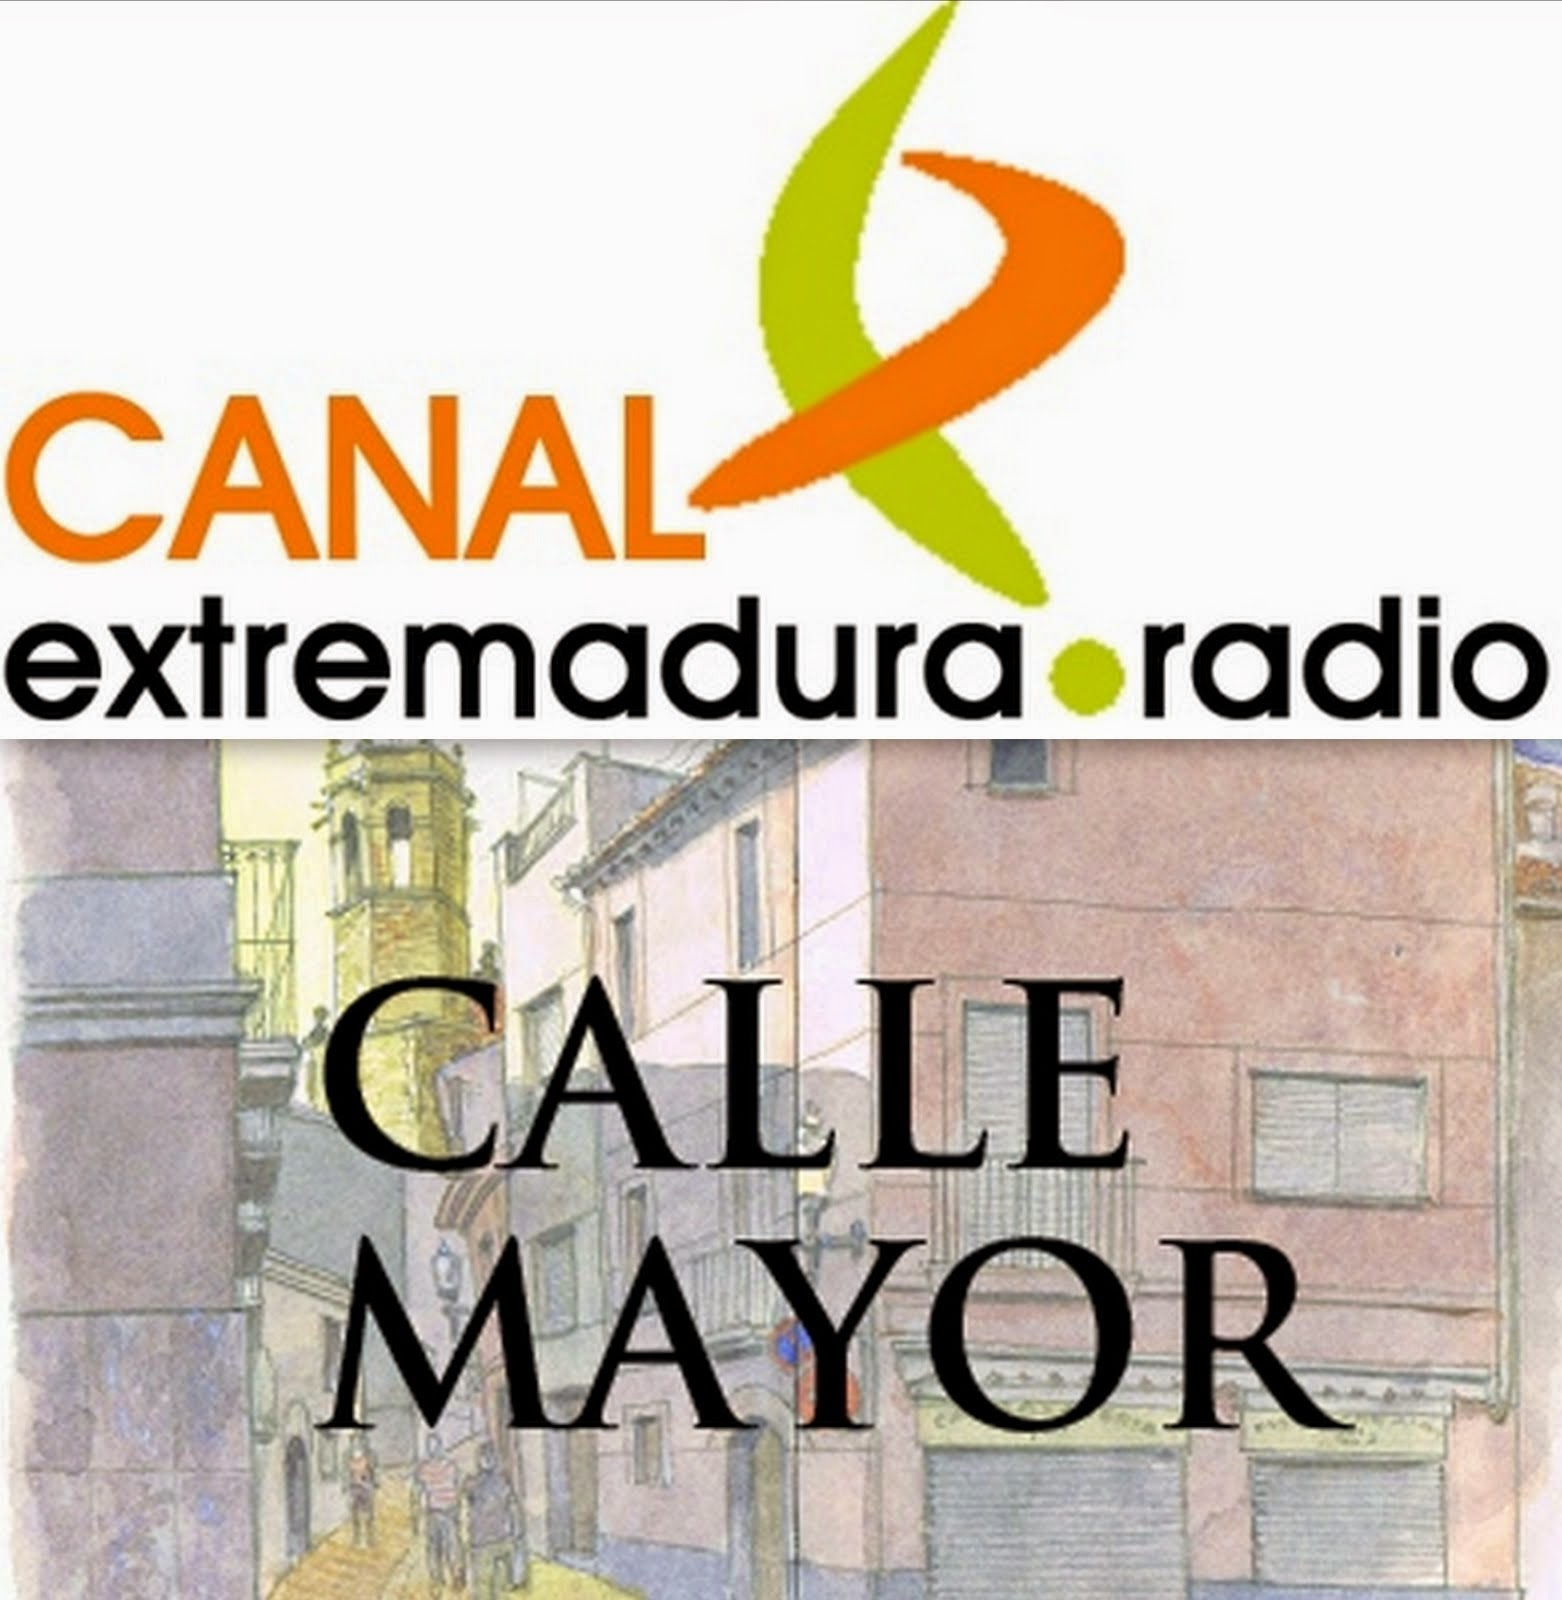 Canal Extremadura Radio: Calle Mayor